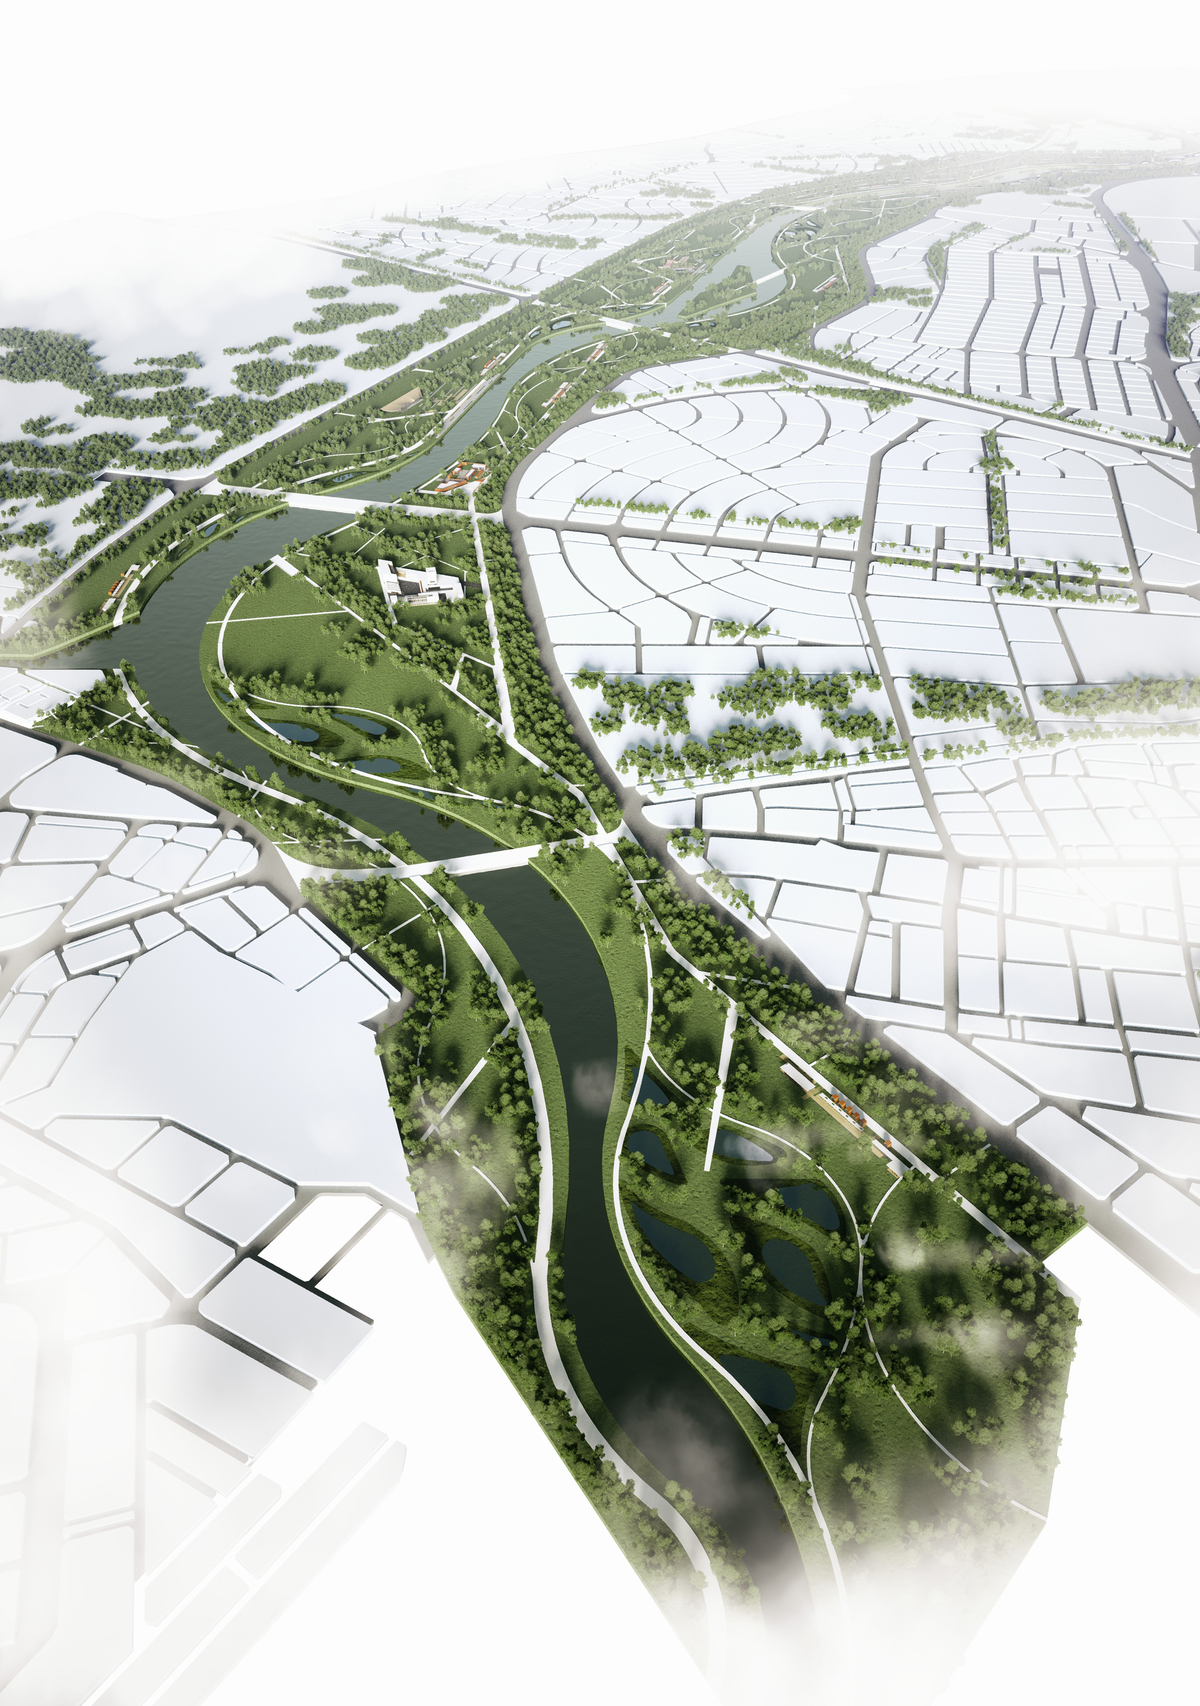 003 – AERIAL VIEW - Image Courtesy of ONZ Architects & MDesign